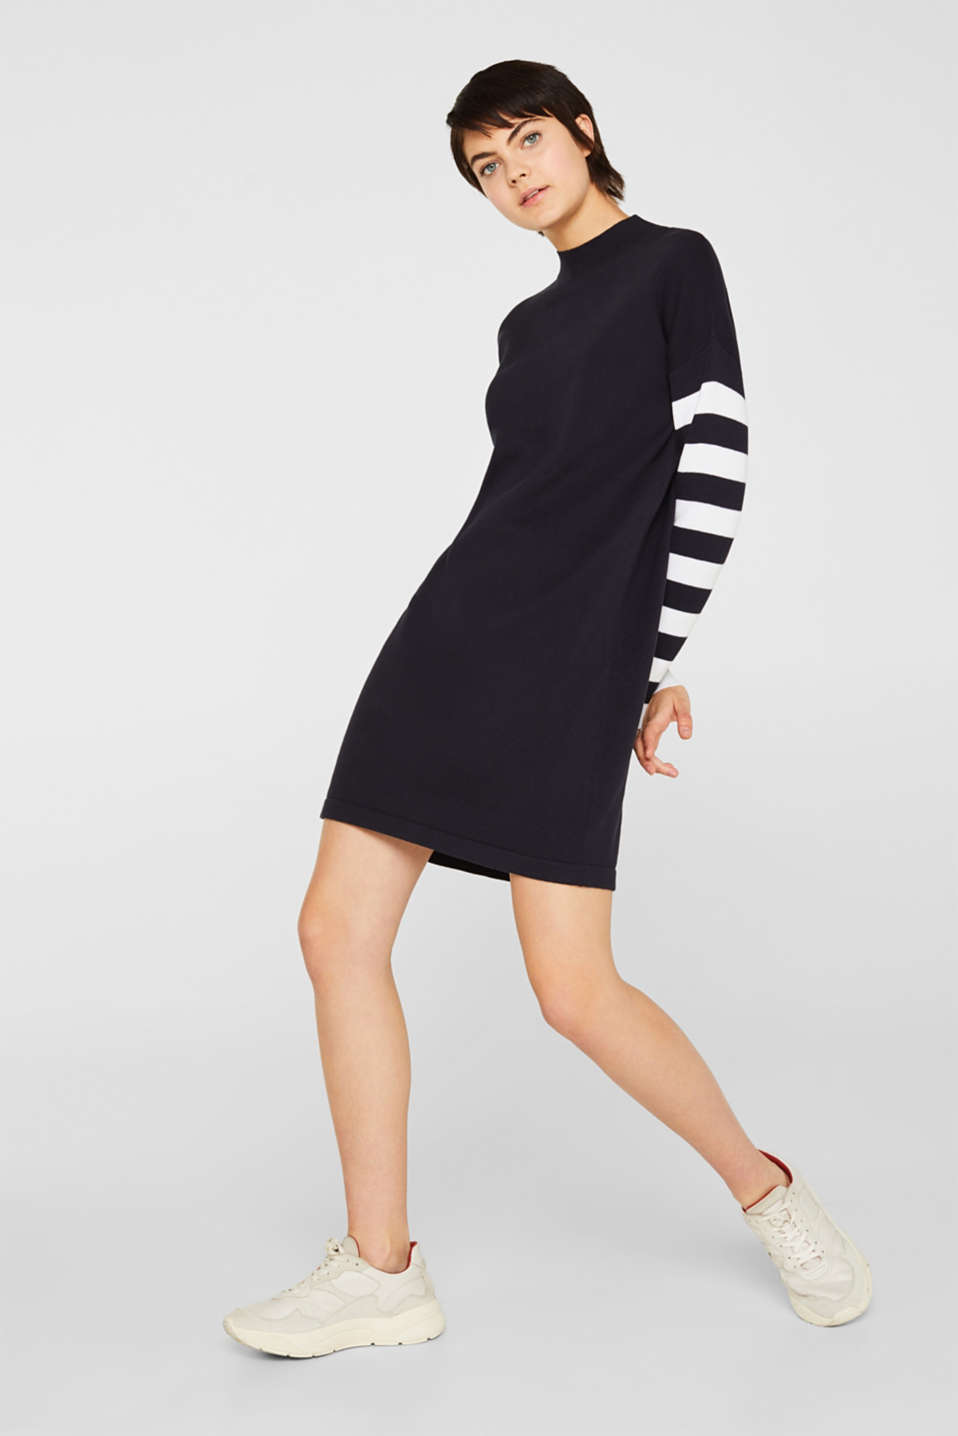 Knit dress with stripes, 100% cotton, NAVY 2, detail image number 1